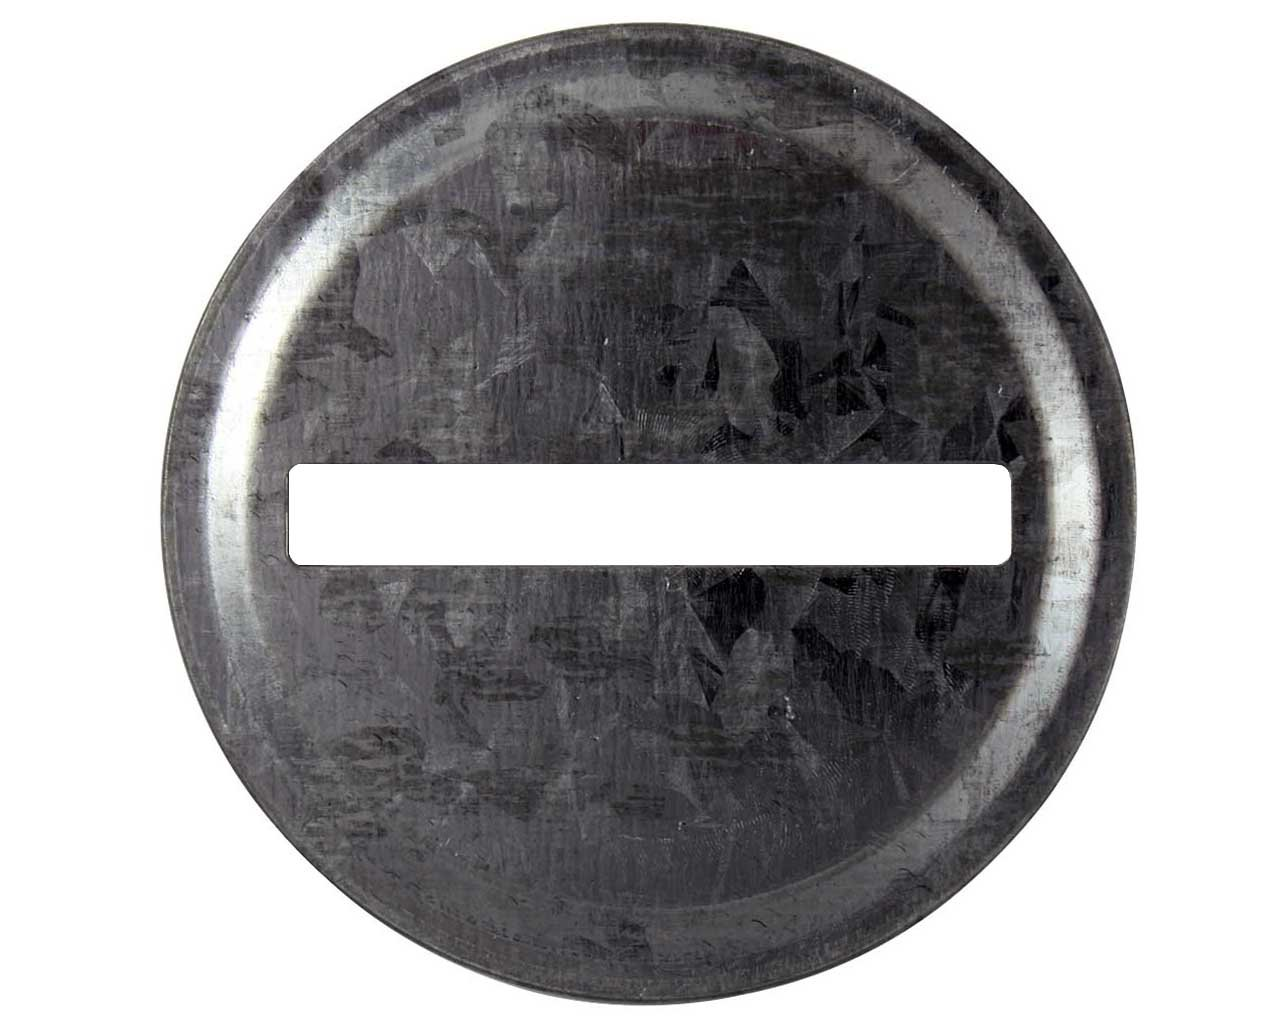 Coin Slot Bank Galvanized Metal Lid Inserts for Mason, Ball, Canning Jars (10 Pack, Regular Mouth)